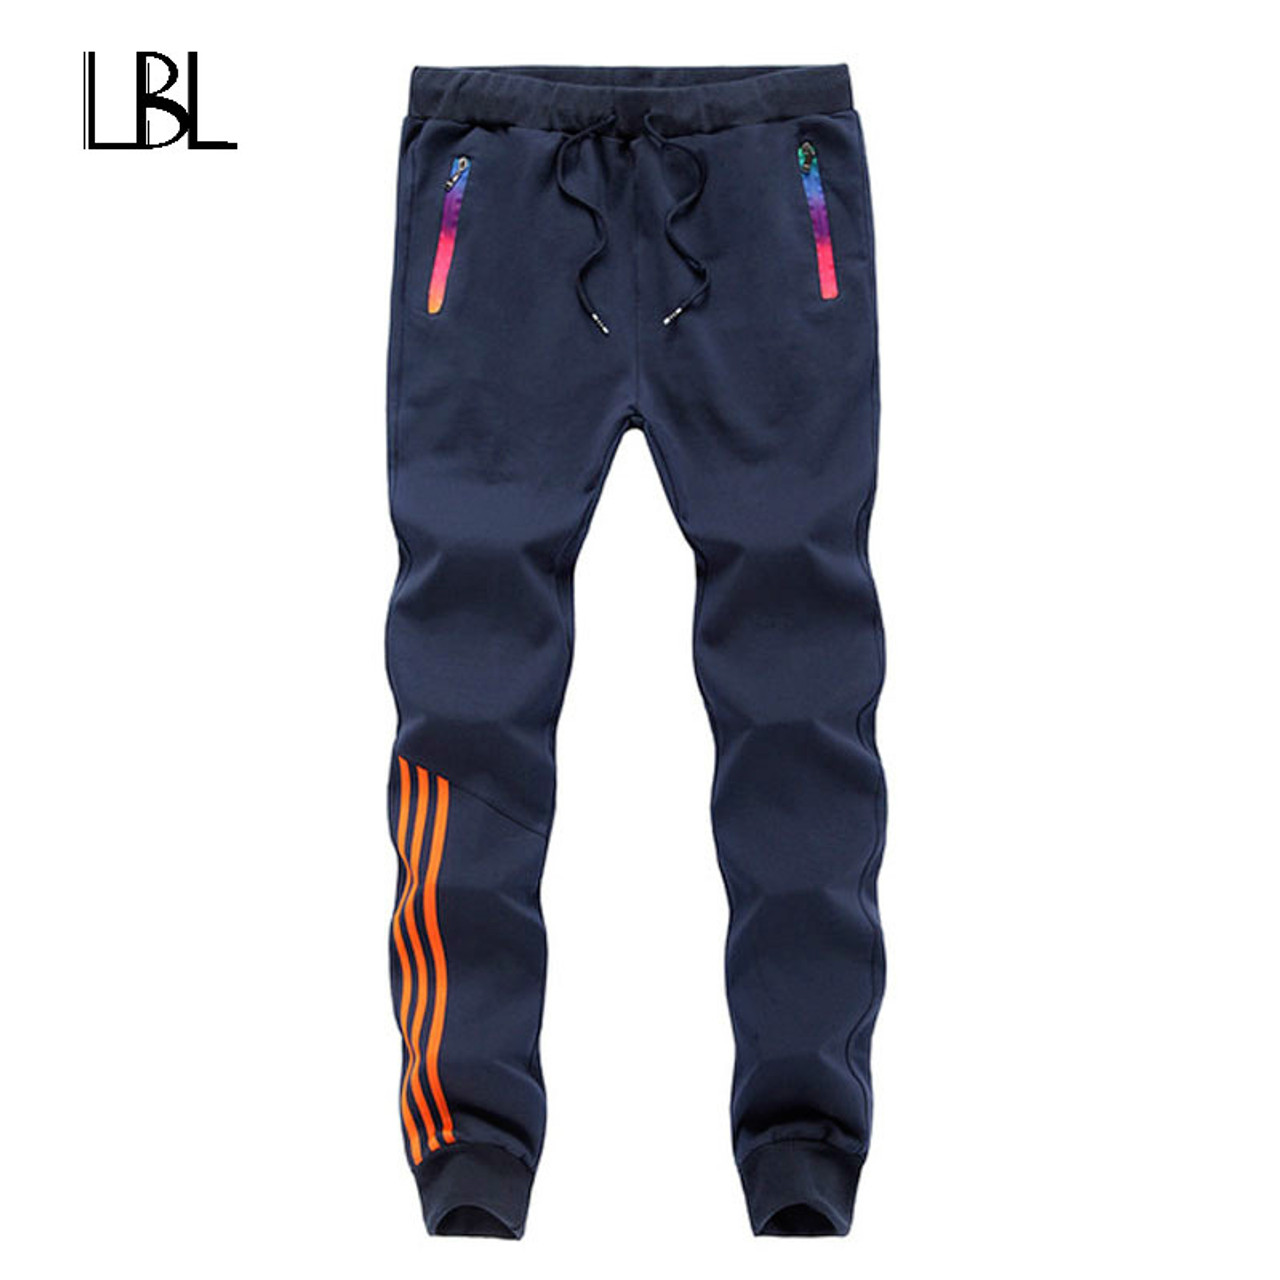 2018 New Fashion Tracksuit Bottoms Mens Casual Pants Cotton         2018 New Fashion Tracksuit Bottoms Mens Casual Pants Cotton Sweatpants  Mens Joggers Striped Pants Gyms Clothing